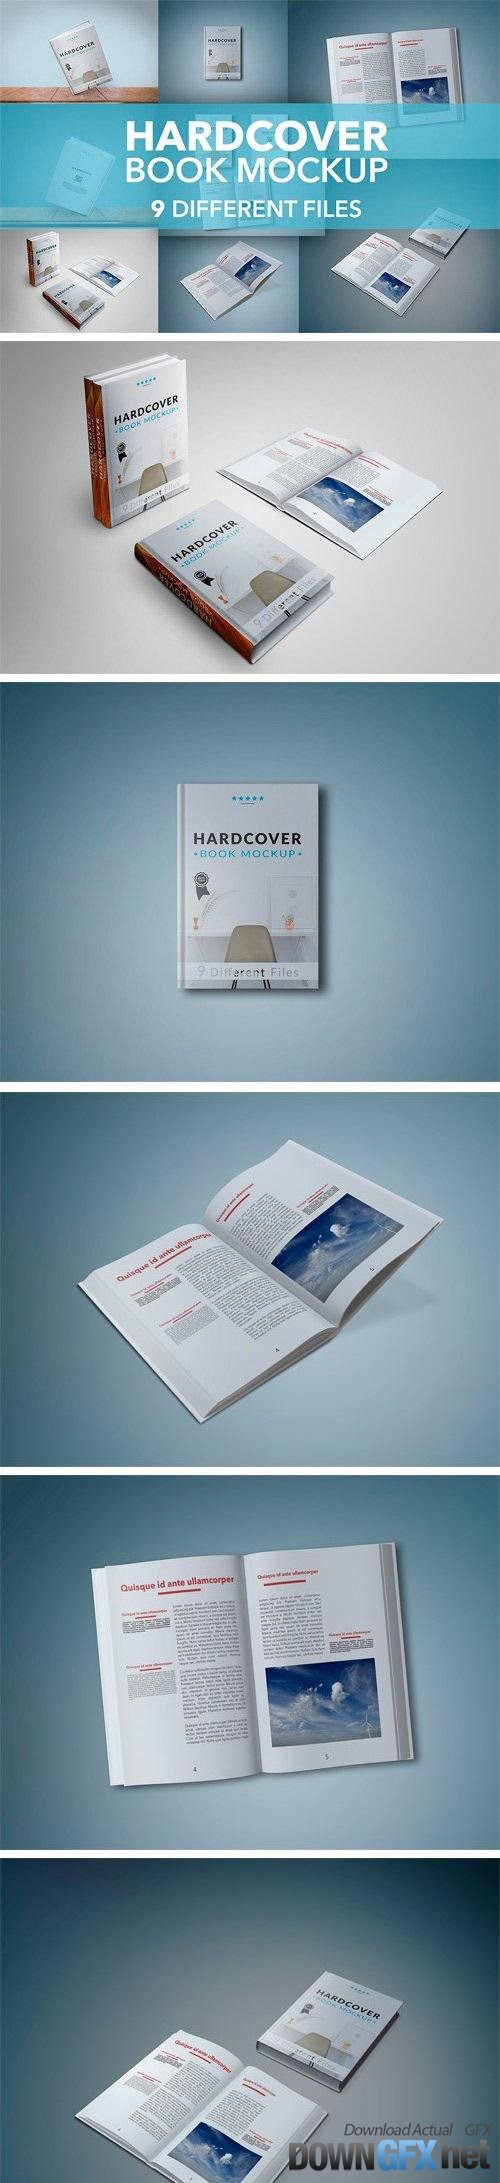 9 Hardcover Book Mockup Bundle - 1361463